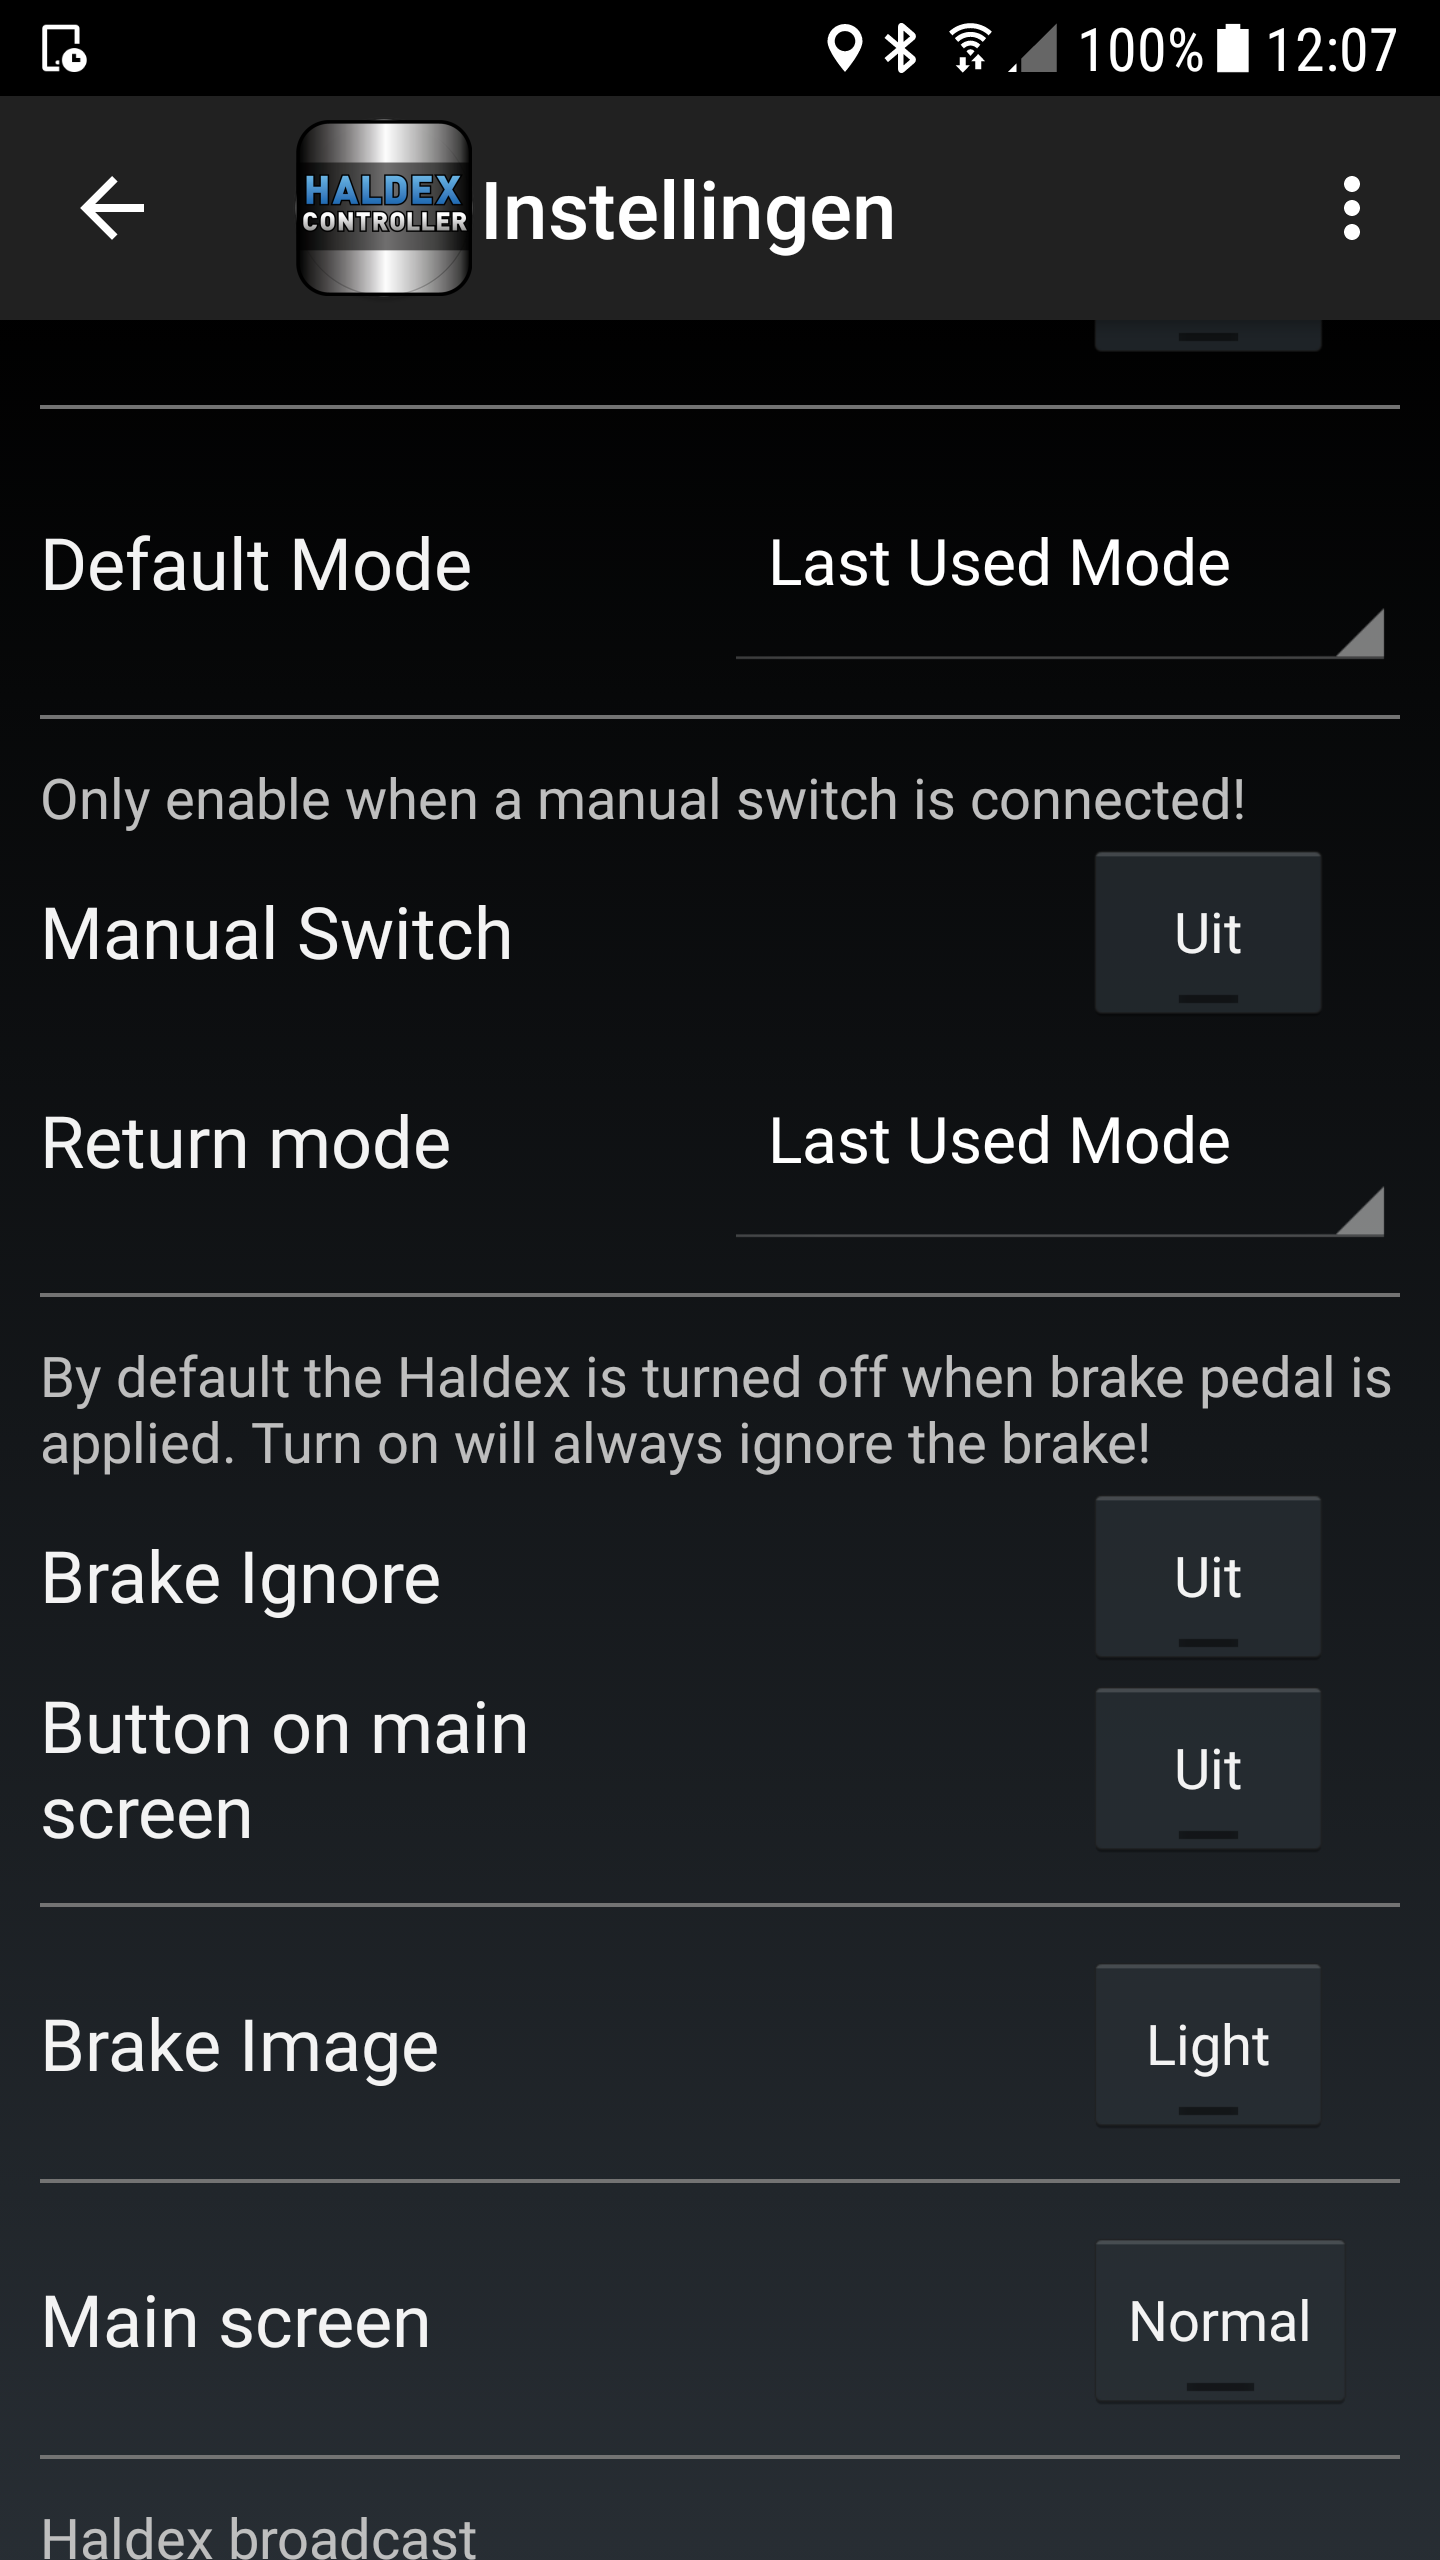 Haldex Controller Settings